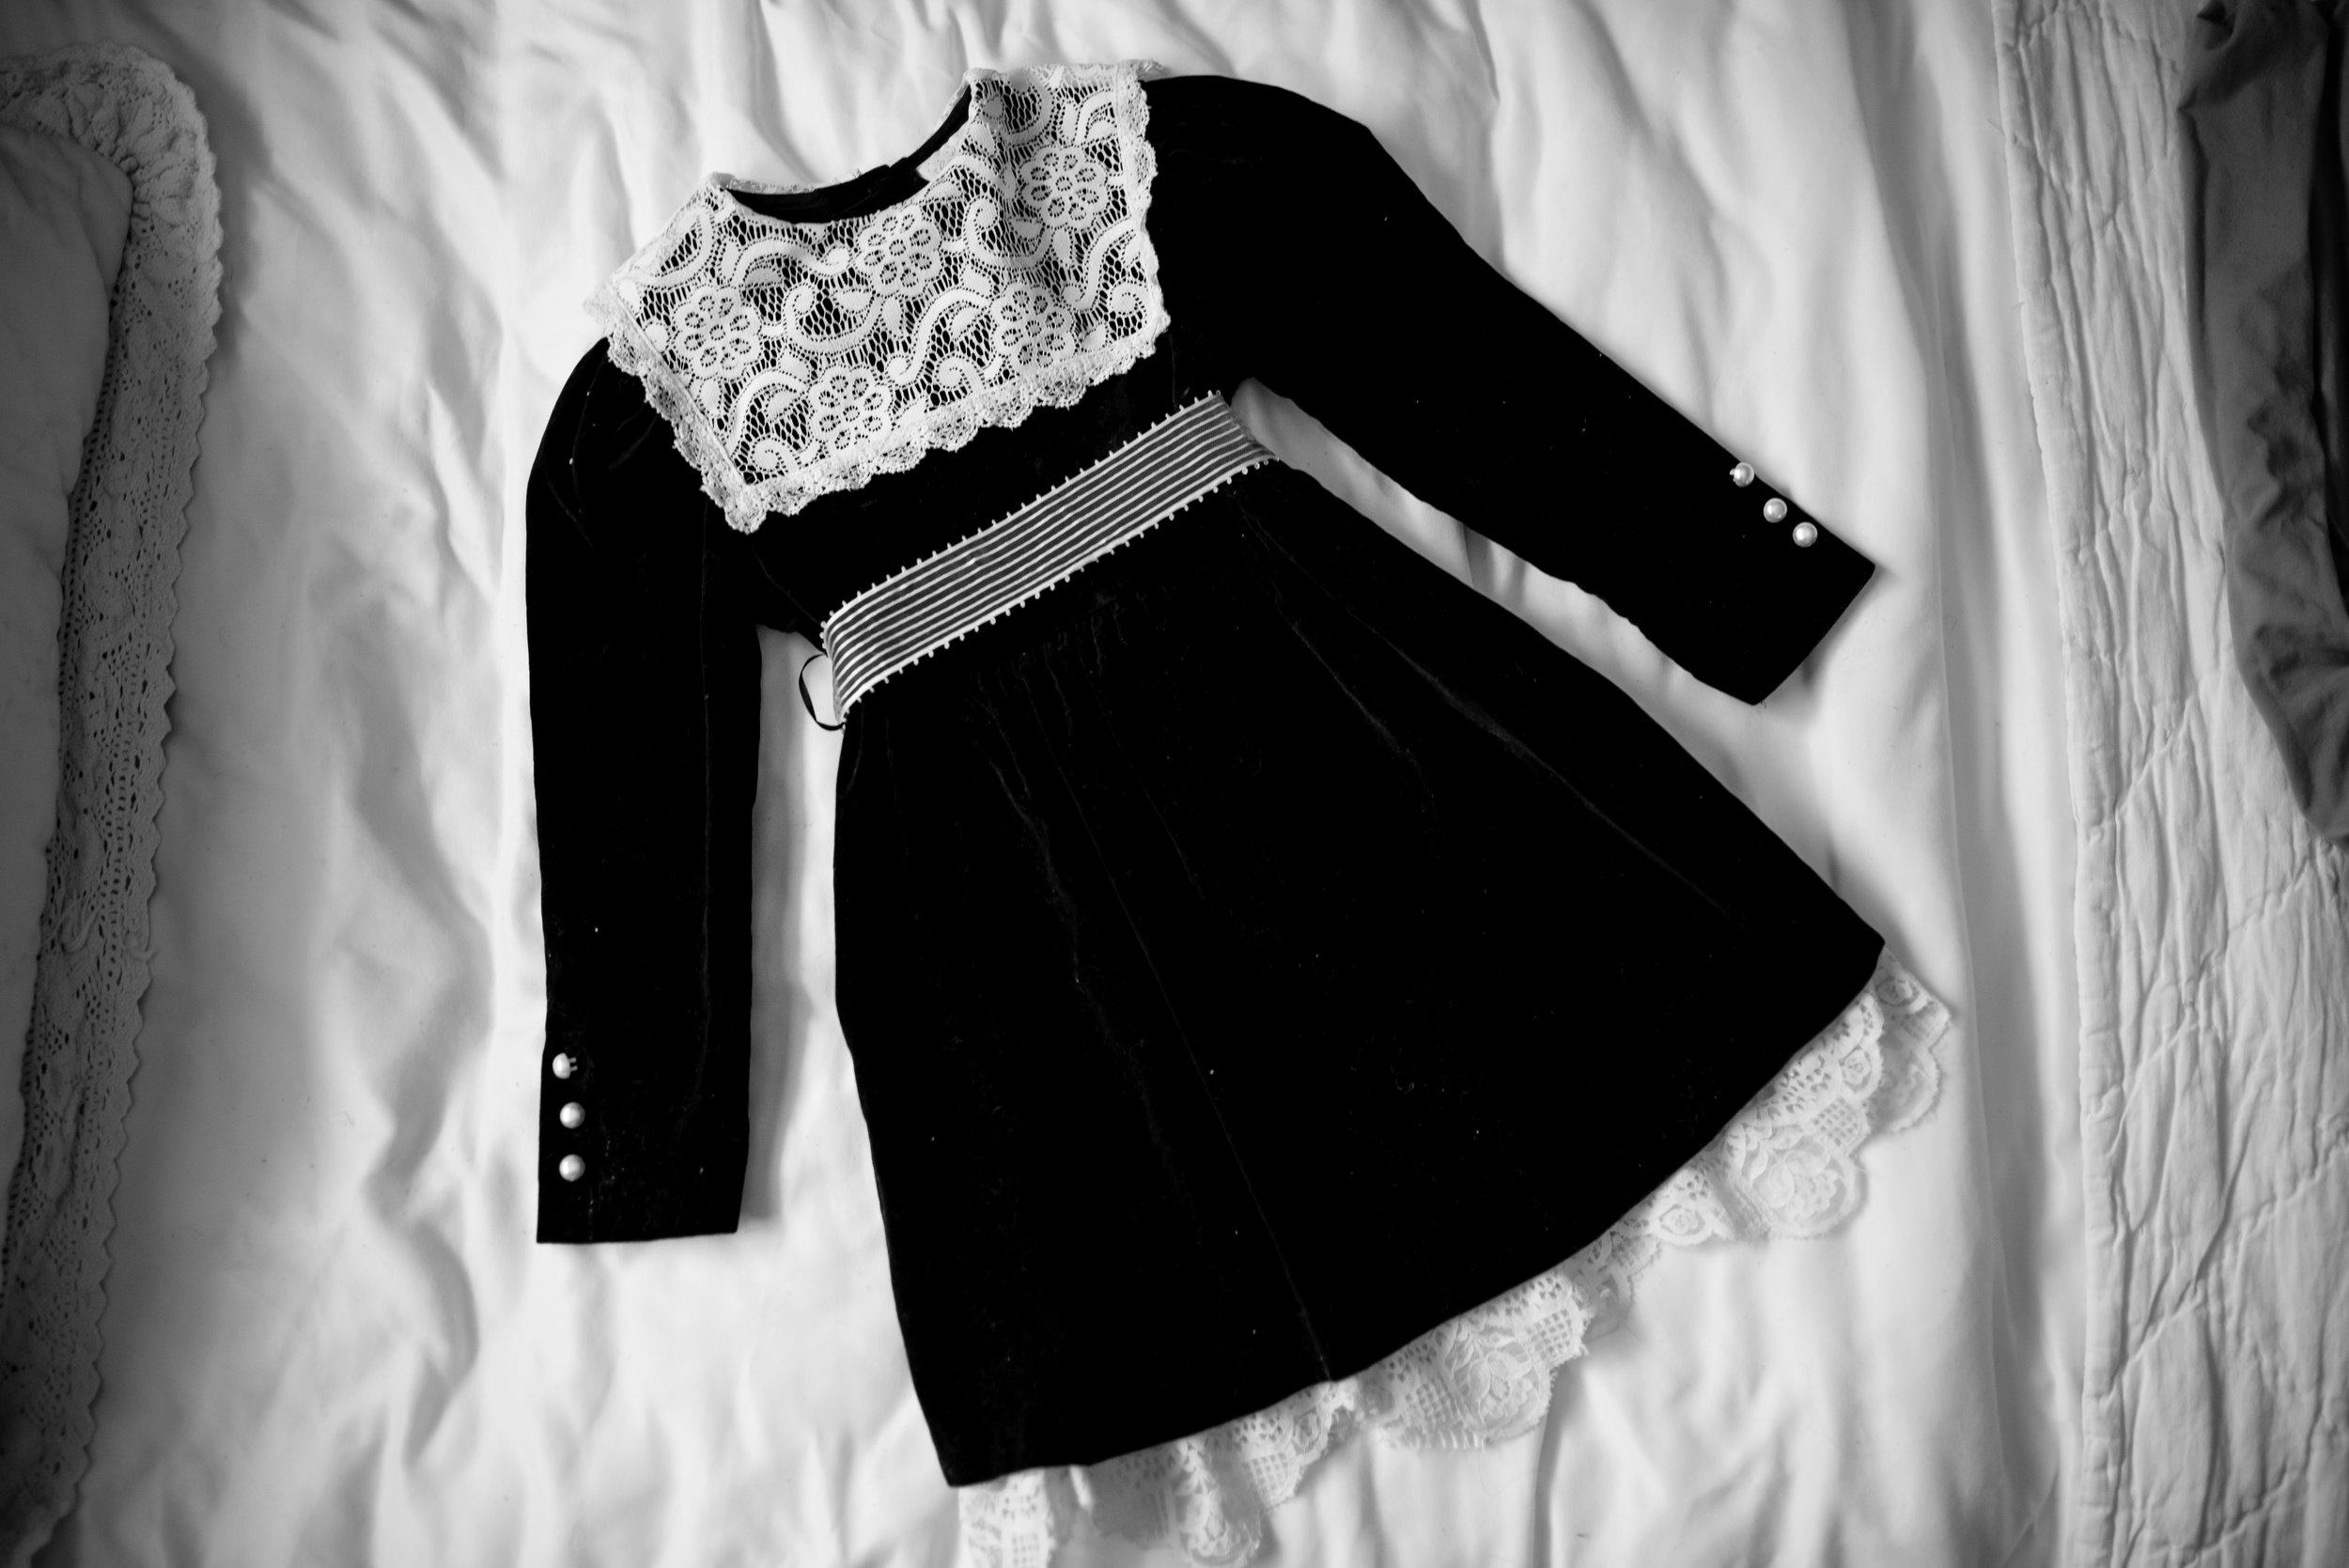 Black and white lace vintage dress sitting on bed